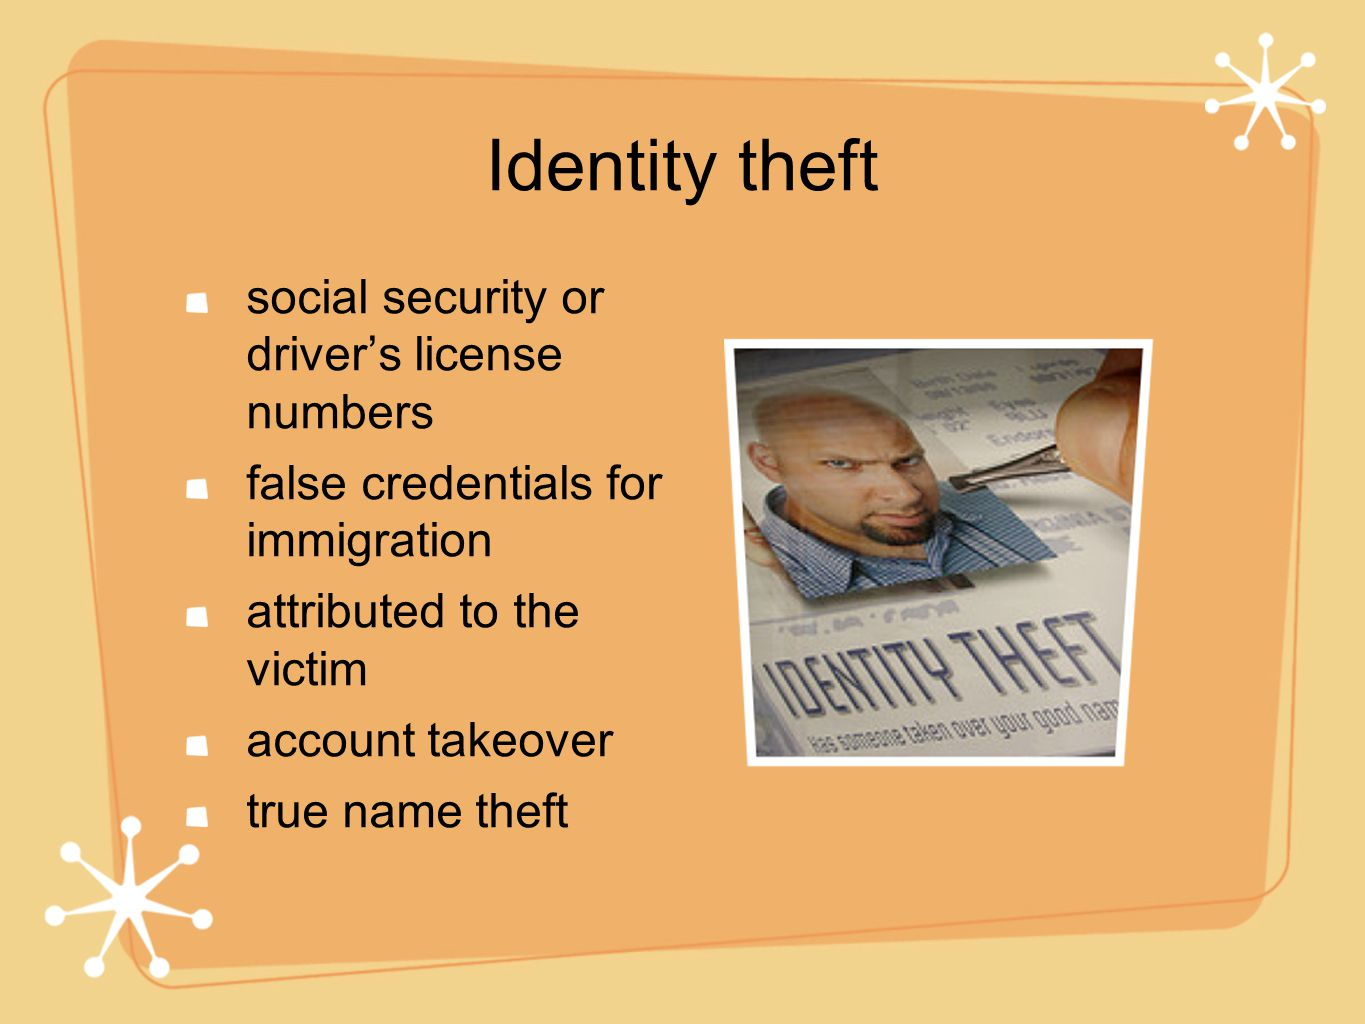 Identity theft social security or driver's license numbers false credentials for immigration attributed to the victim account takeover true name theft